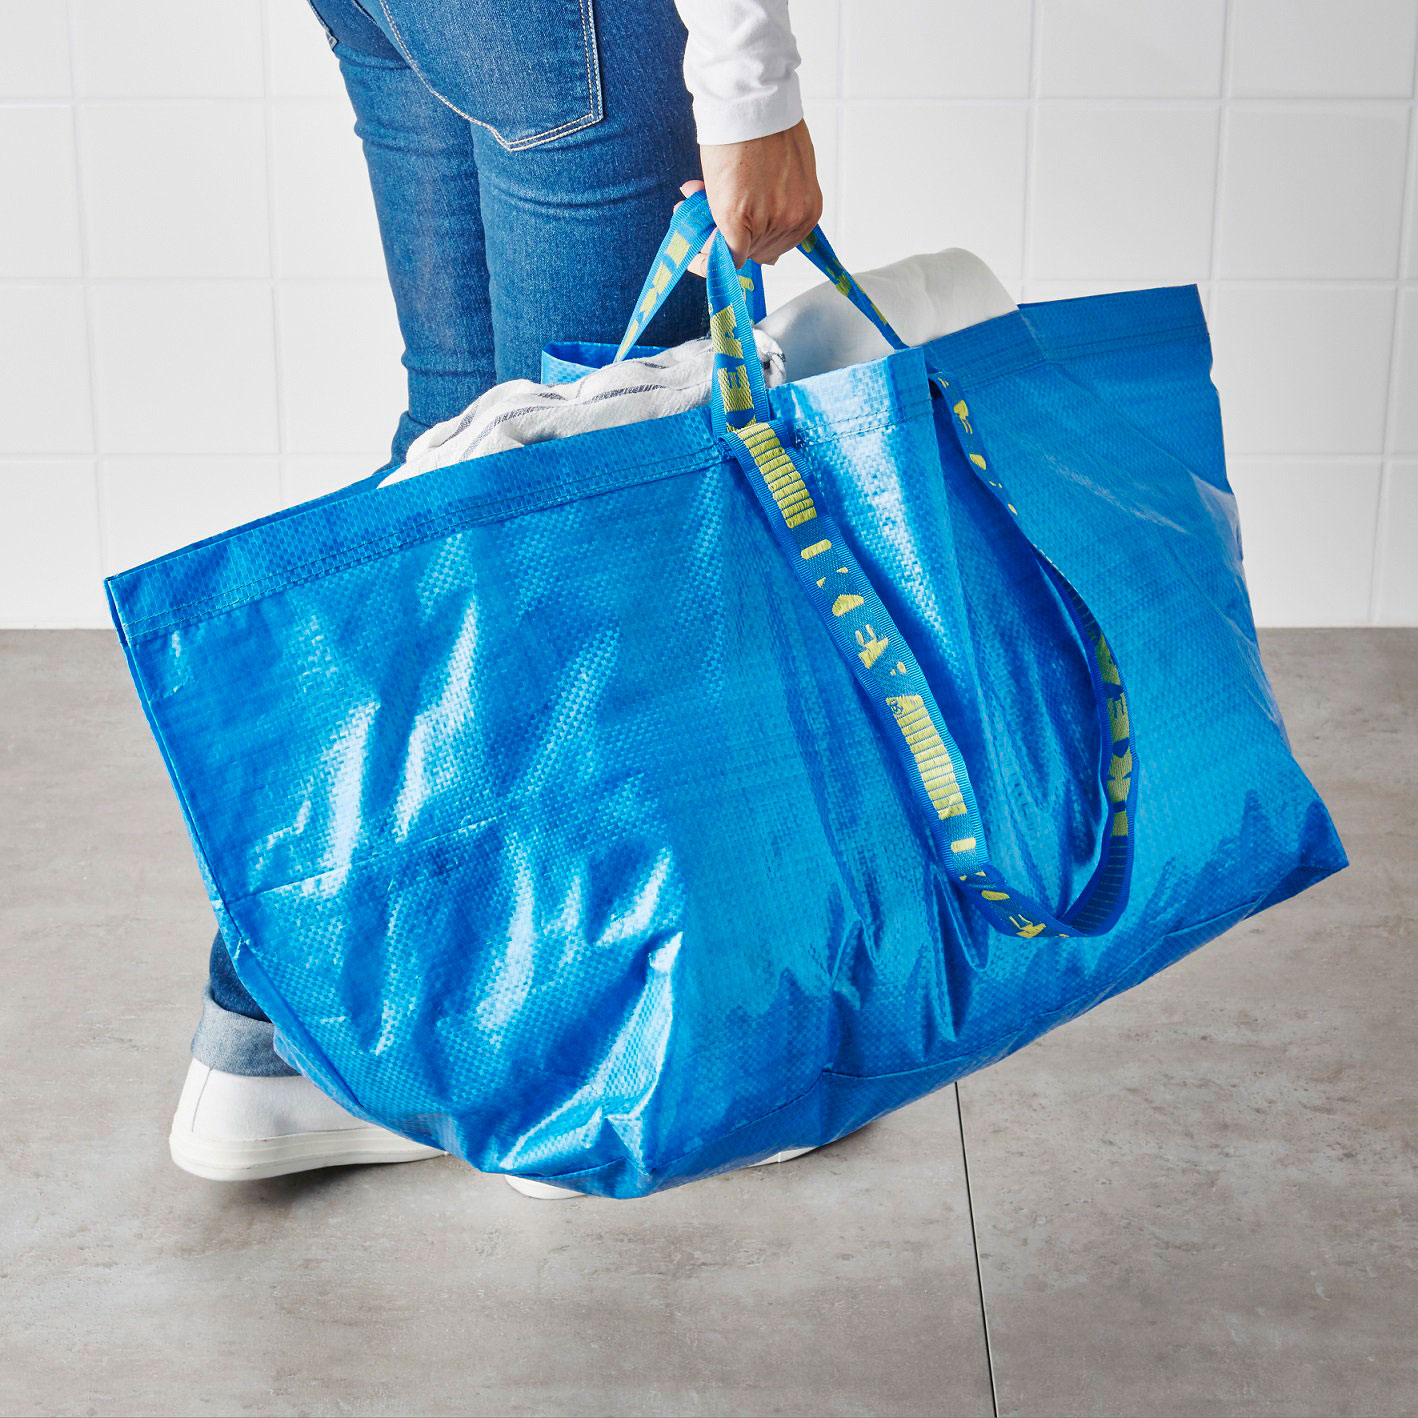 Ikea Had a Hilarious Response to Balenciaga Bag That Looks Just Like Its 99 Cent Tote